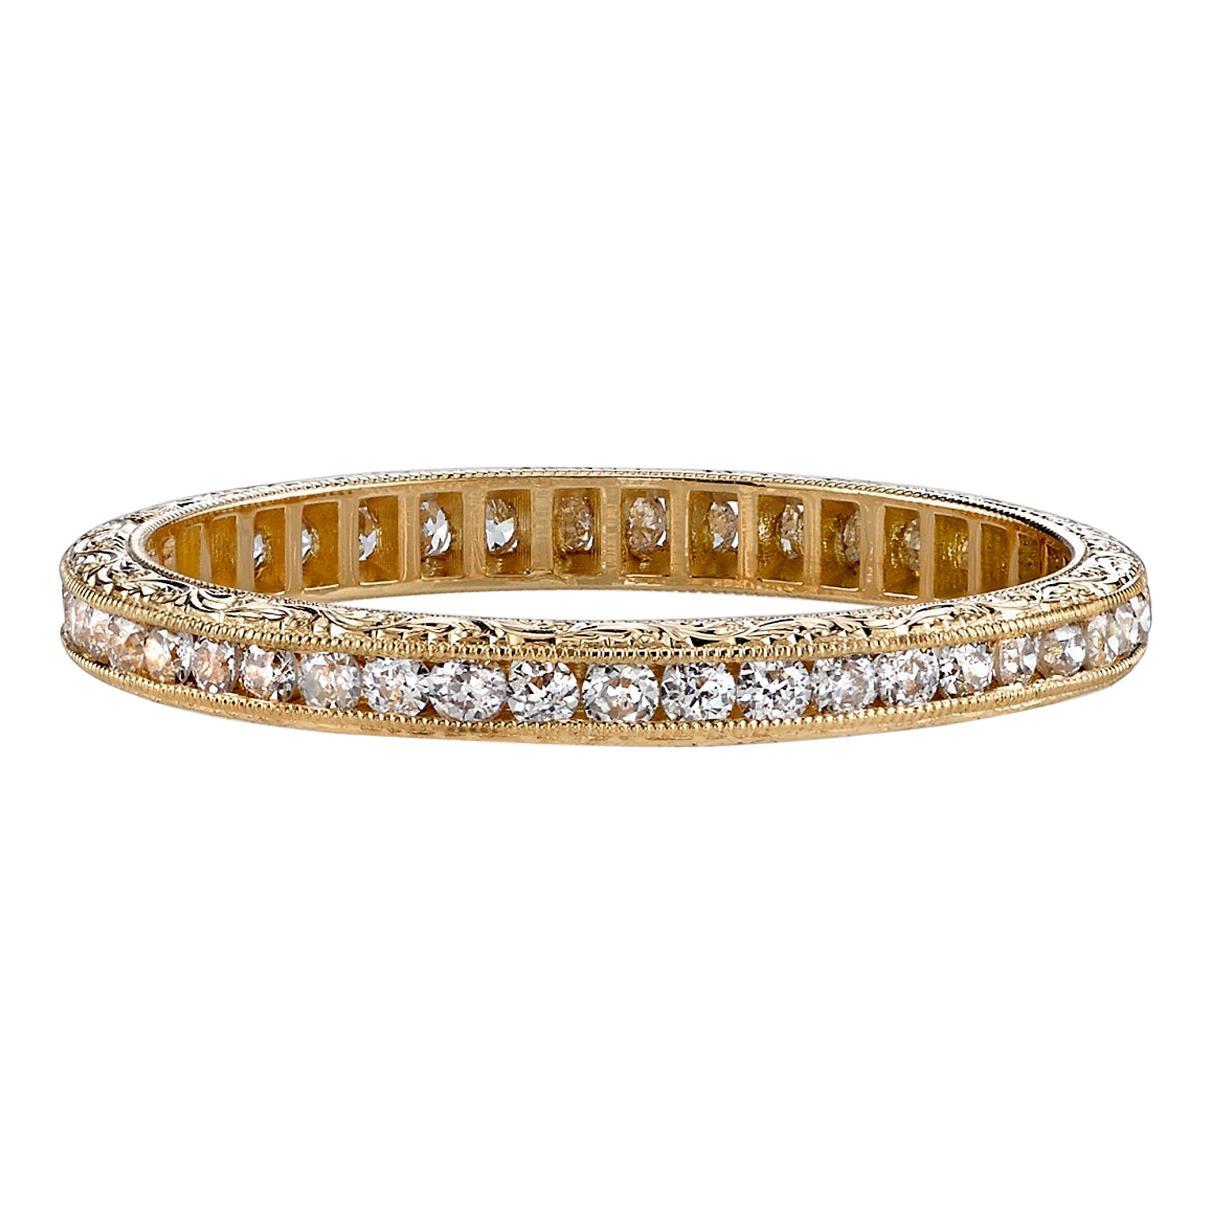 Approx. 0.20 Carat Old European Cut Diamonds Set in a Gold Eternity Band